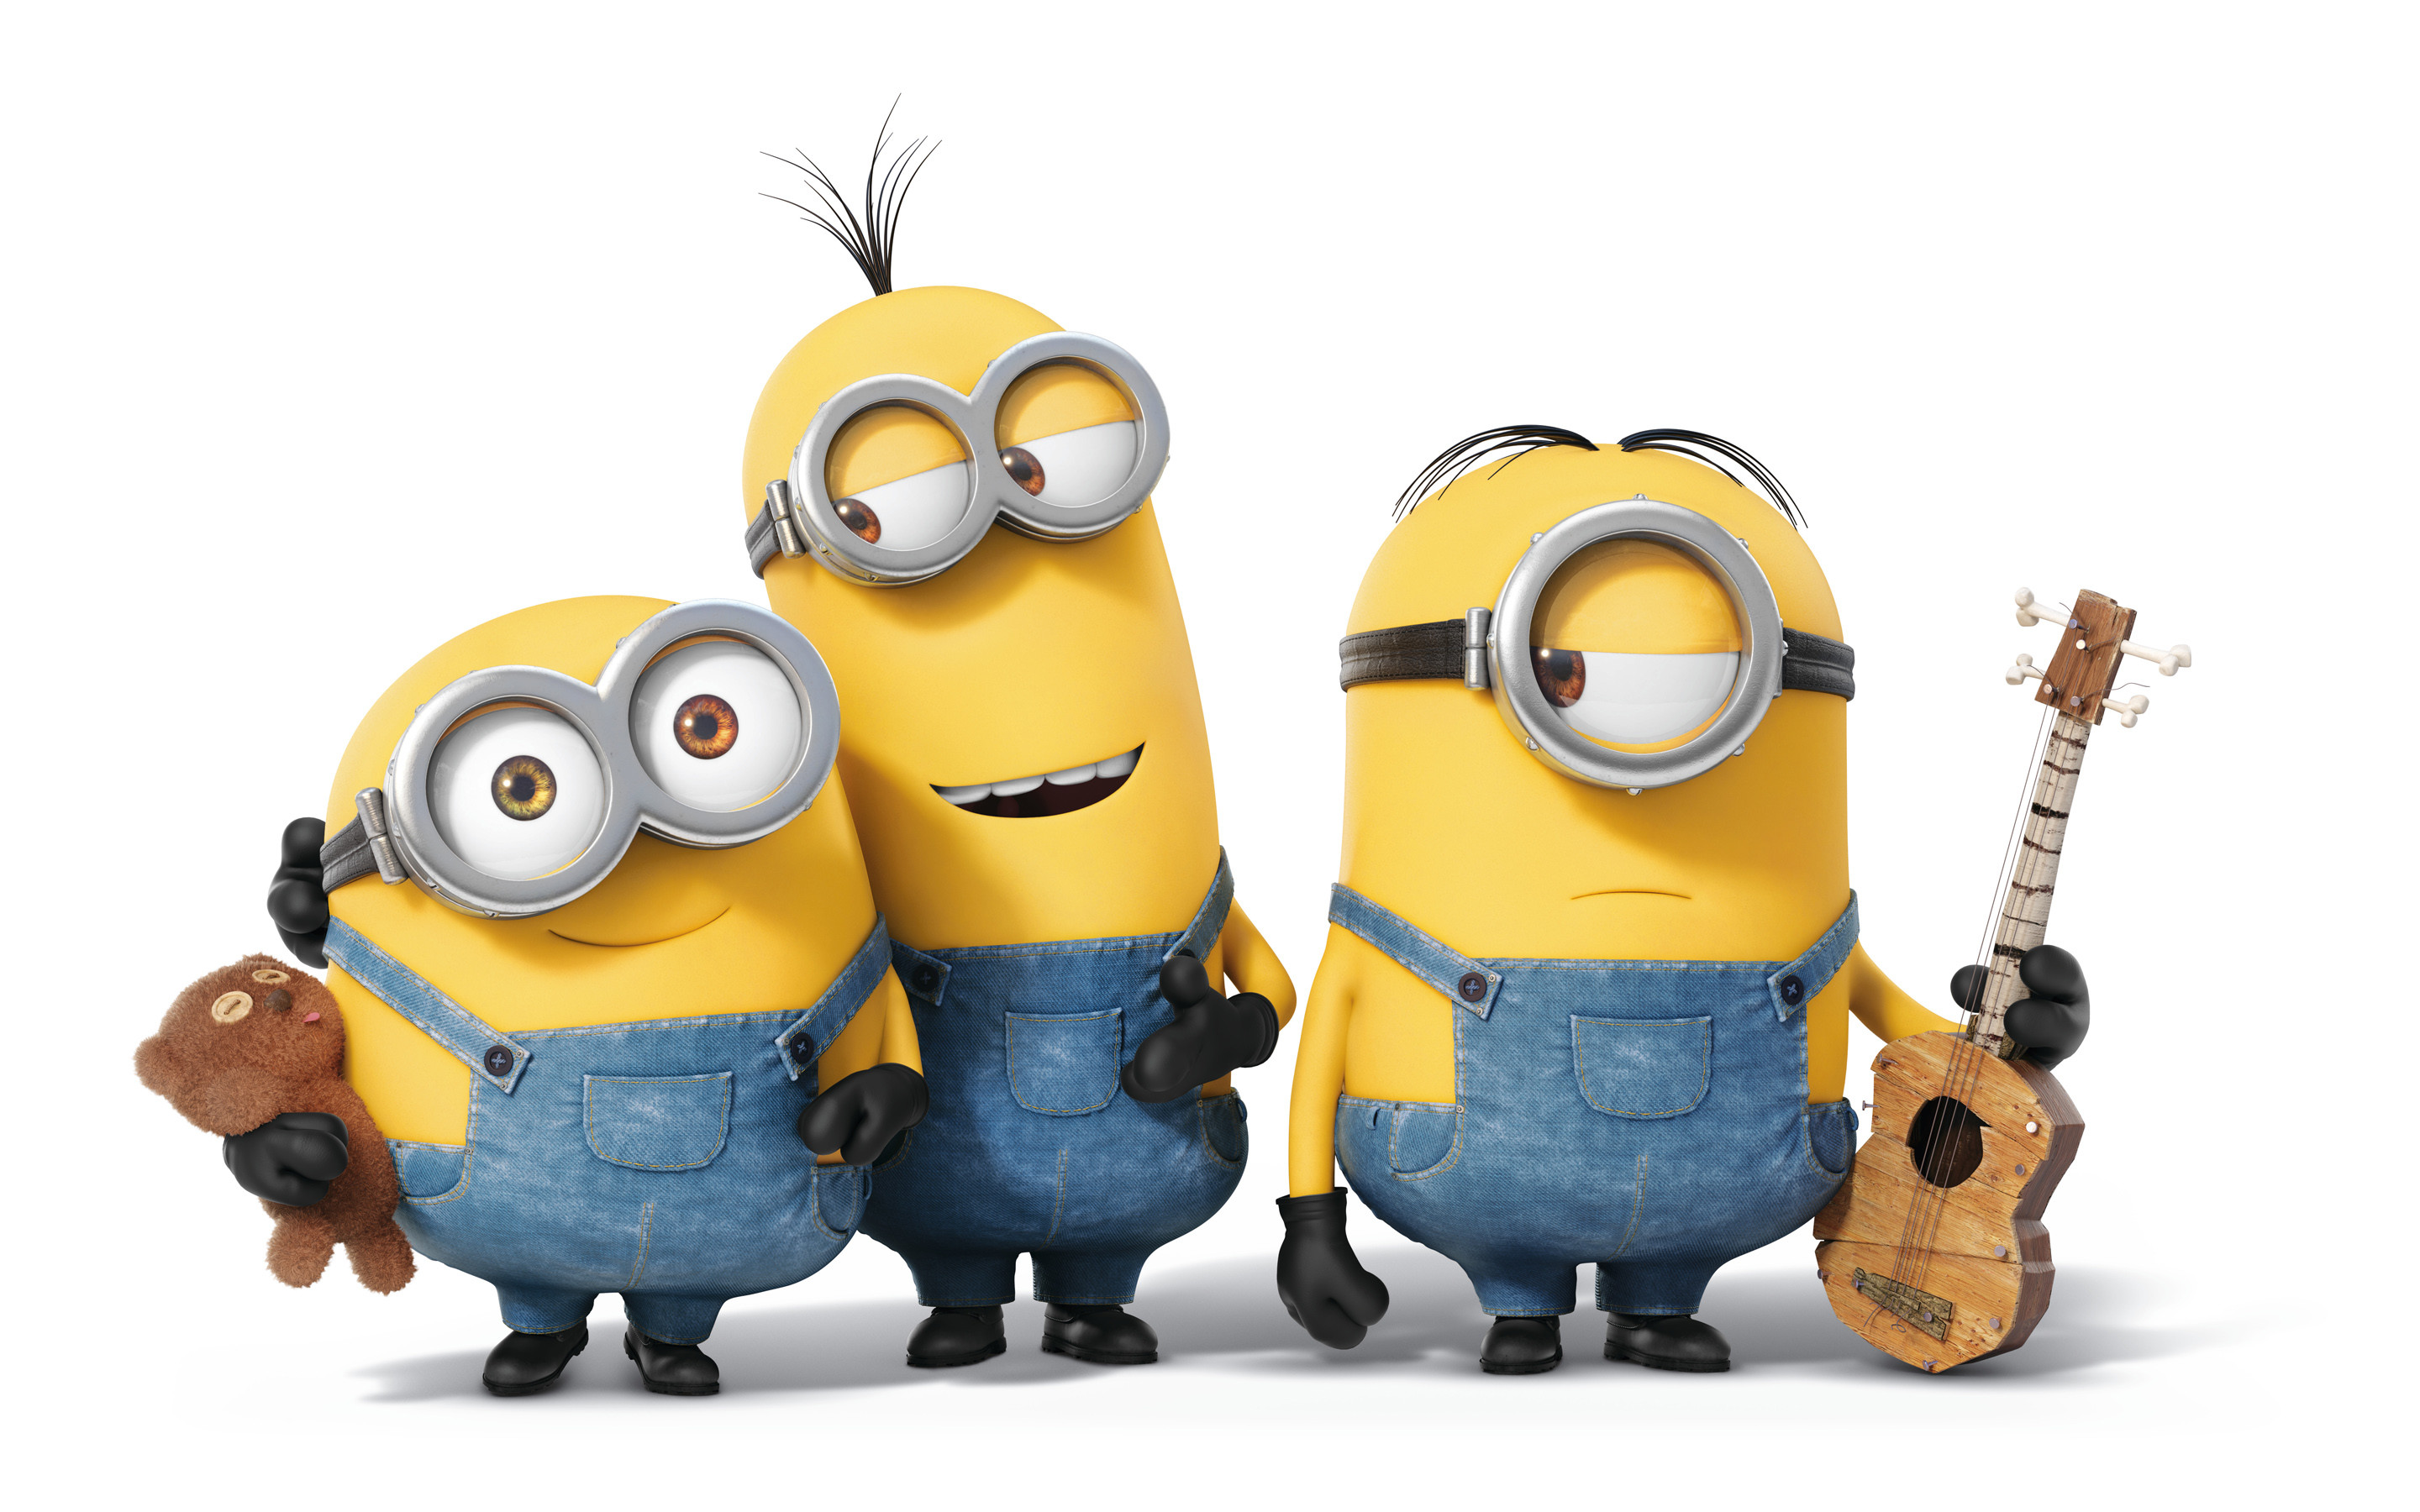 2880x1800 Minions wallpapers. Minions images